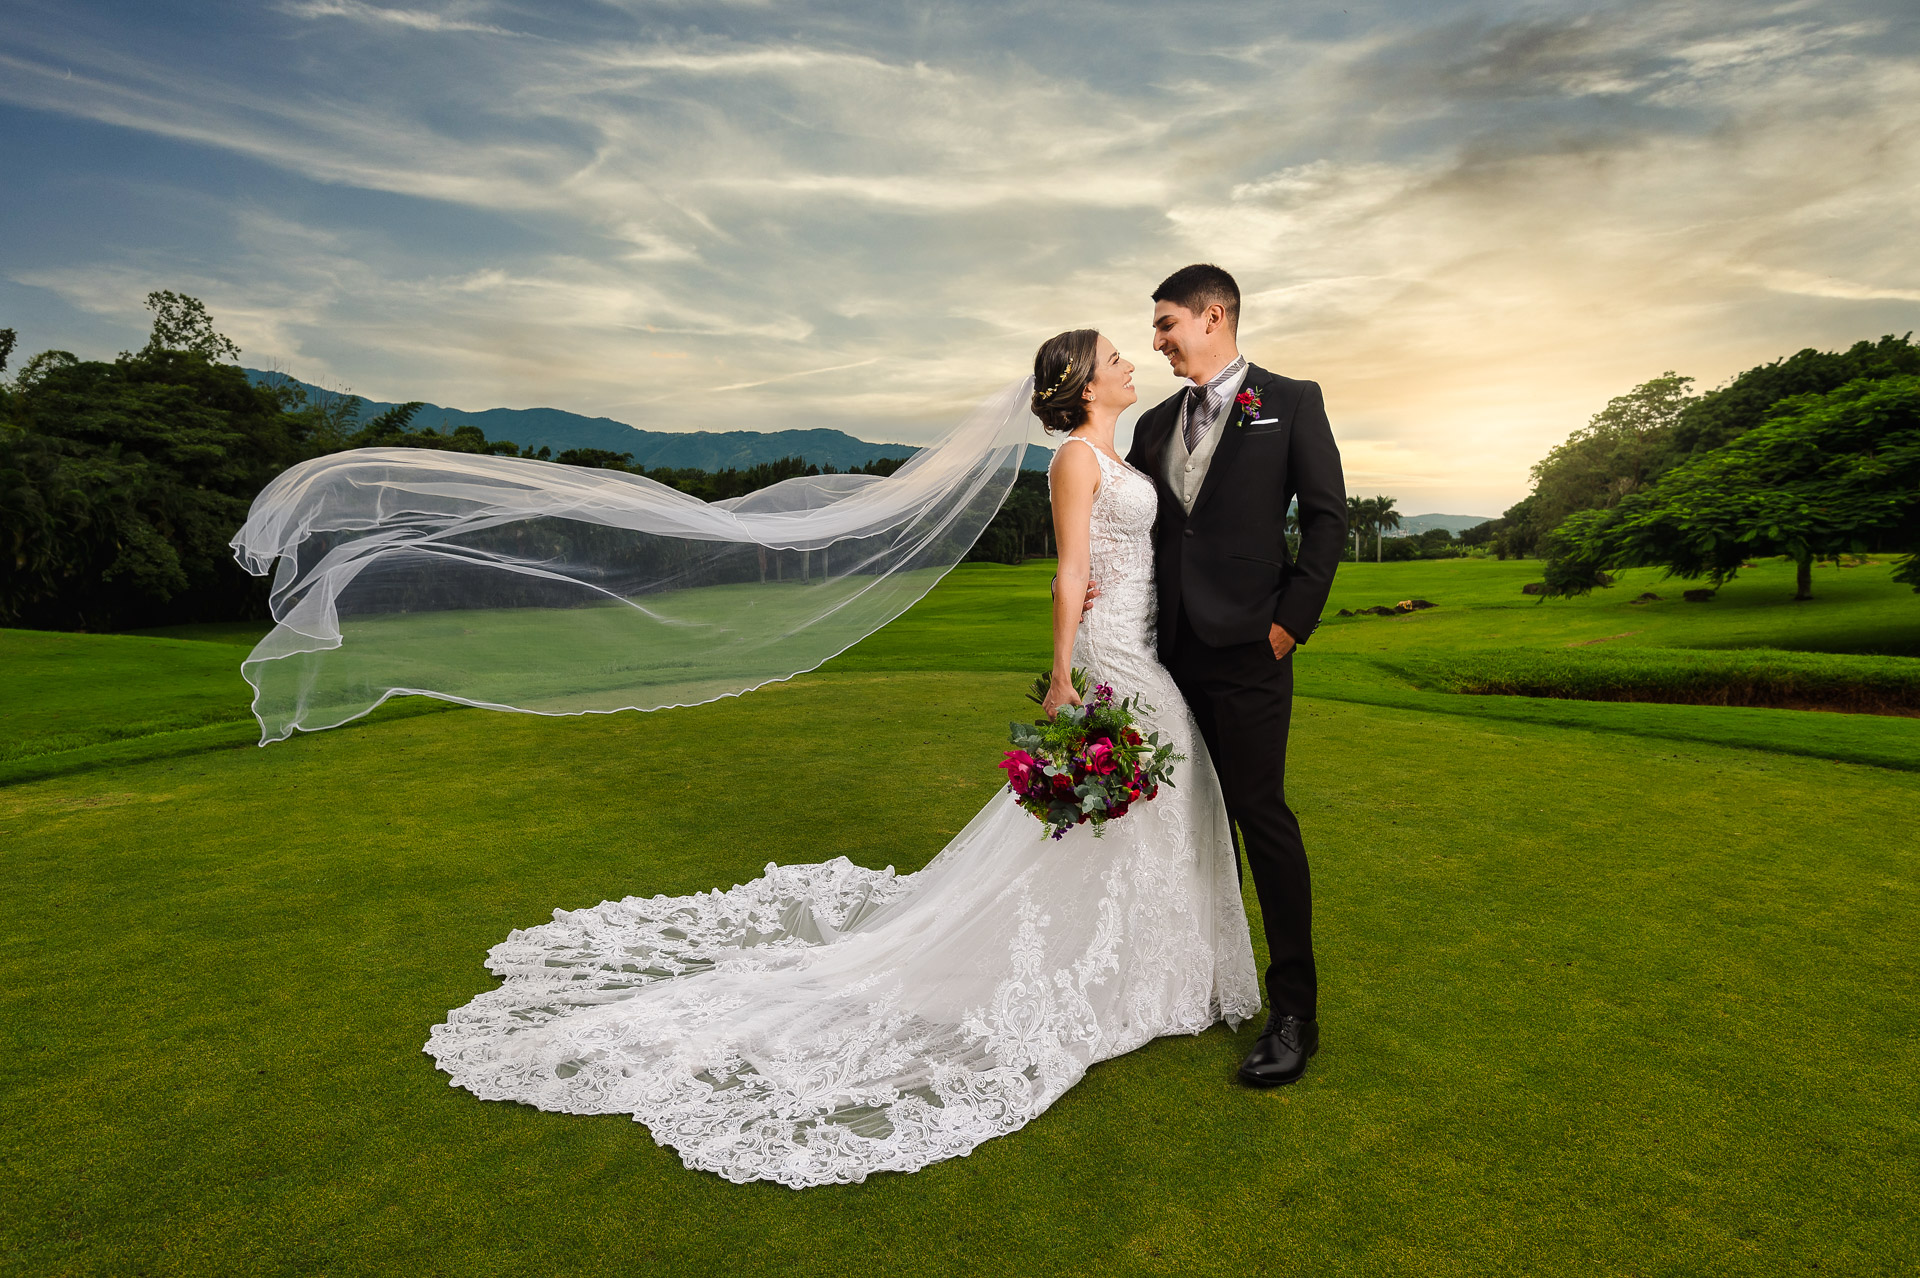 Wedding Photographer of Costa Rica | A portrait of the couple with the stunning background